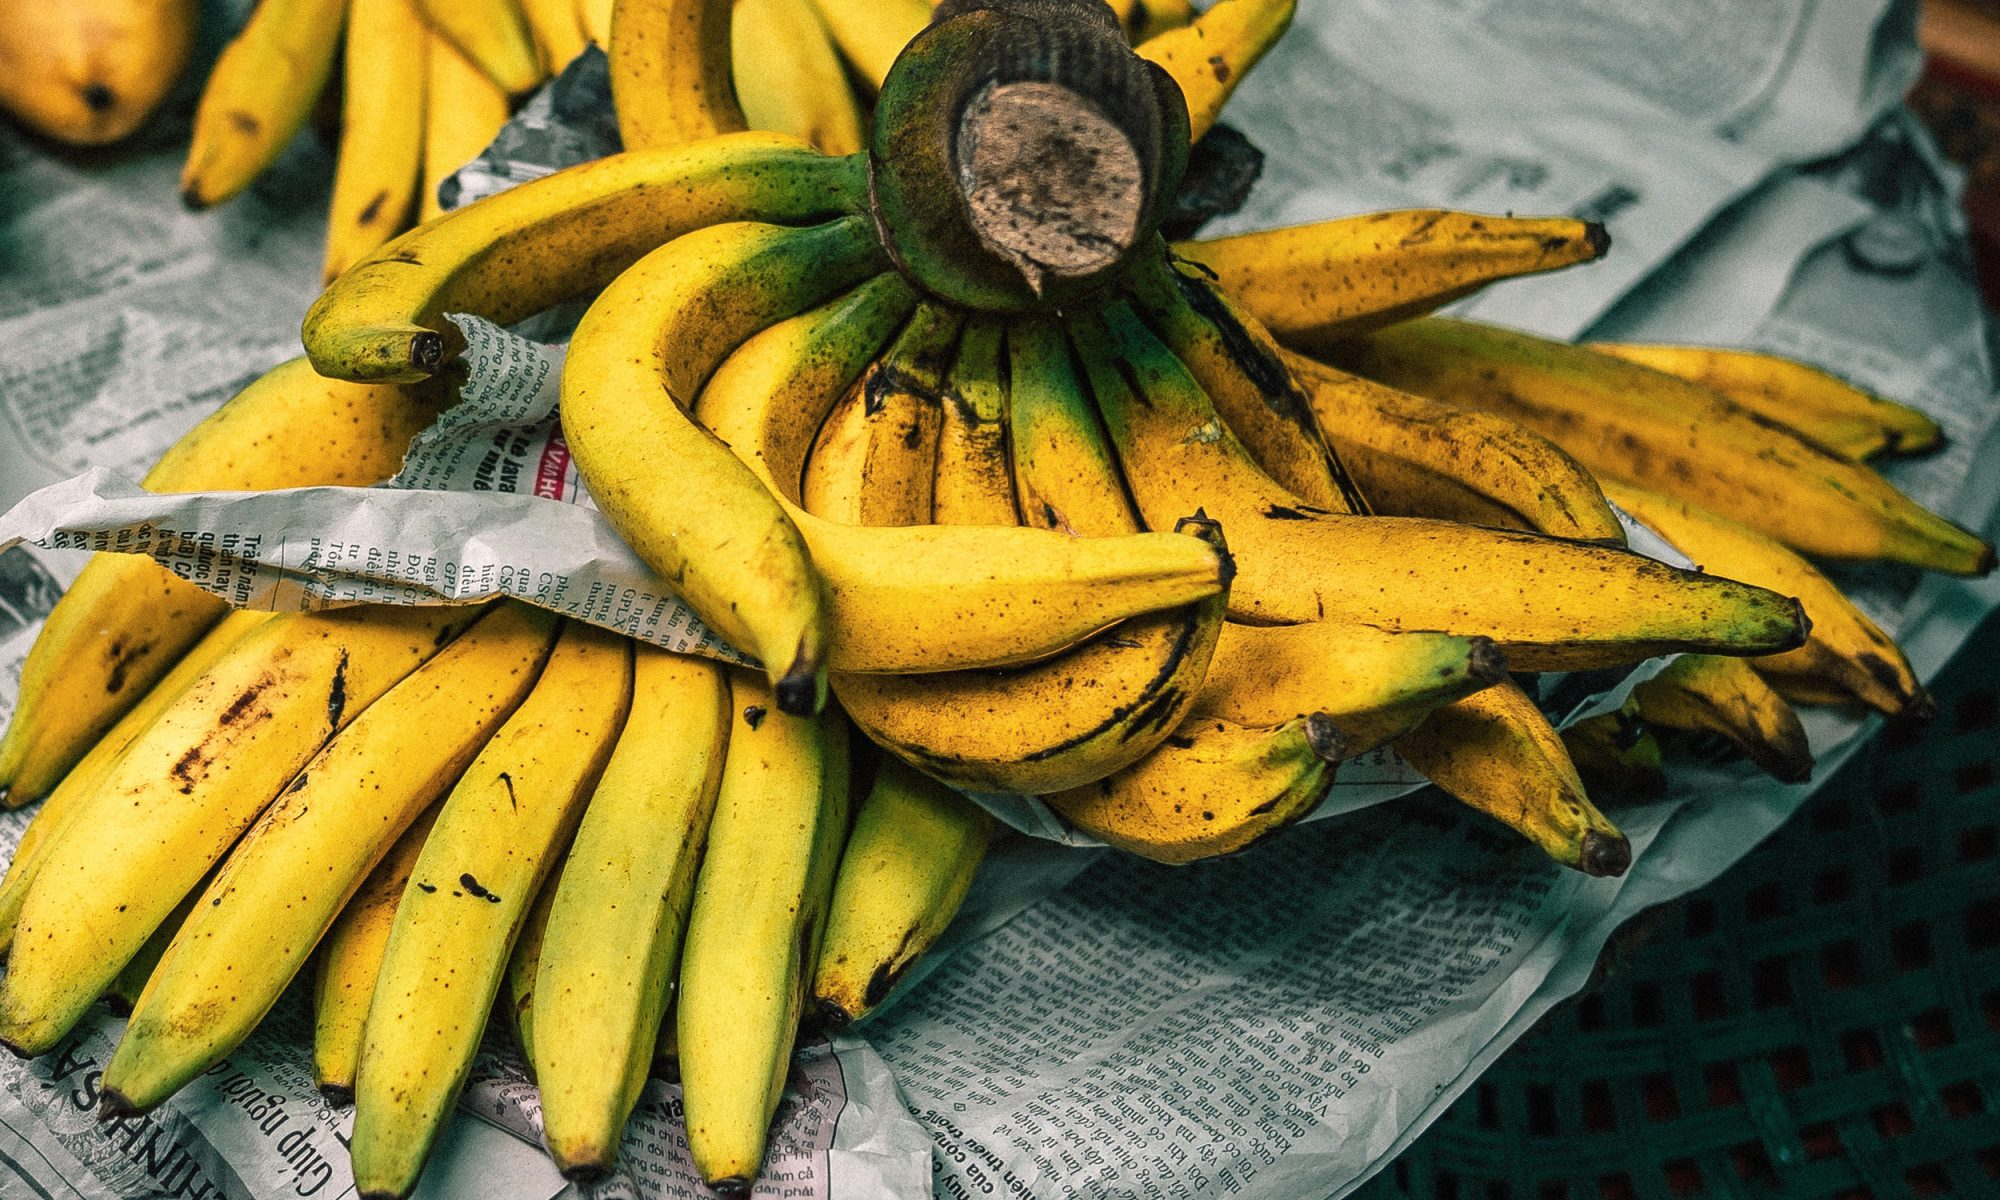 EC: Banana Extinction Could Be Prevented with Genetically Modified Plants